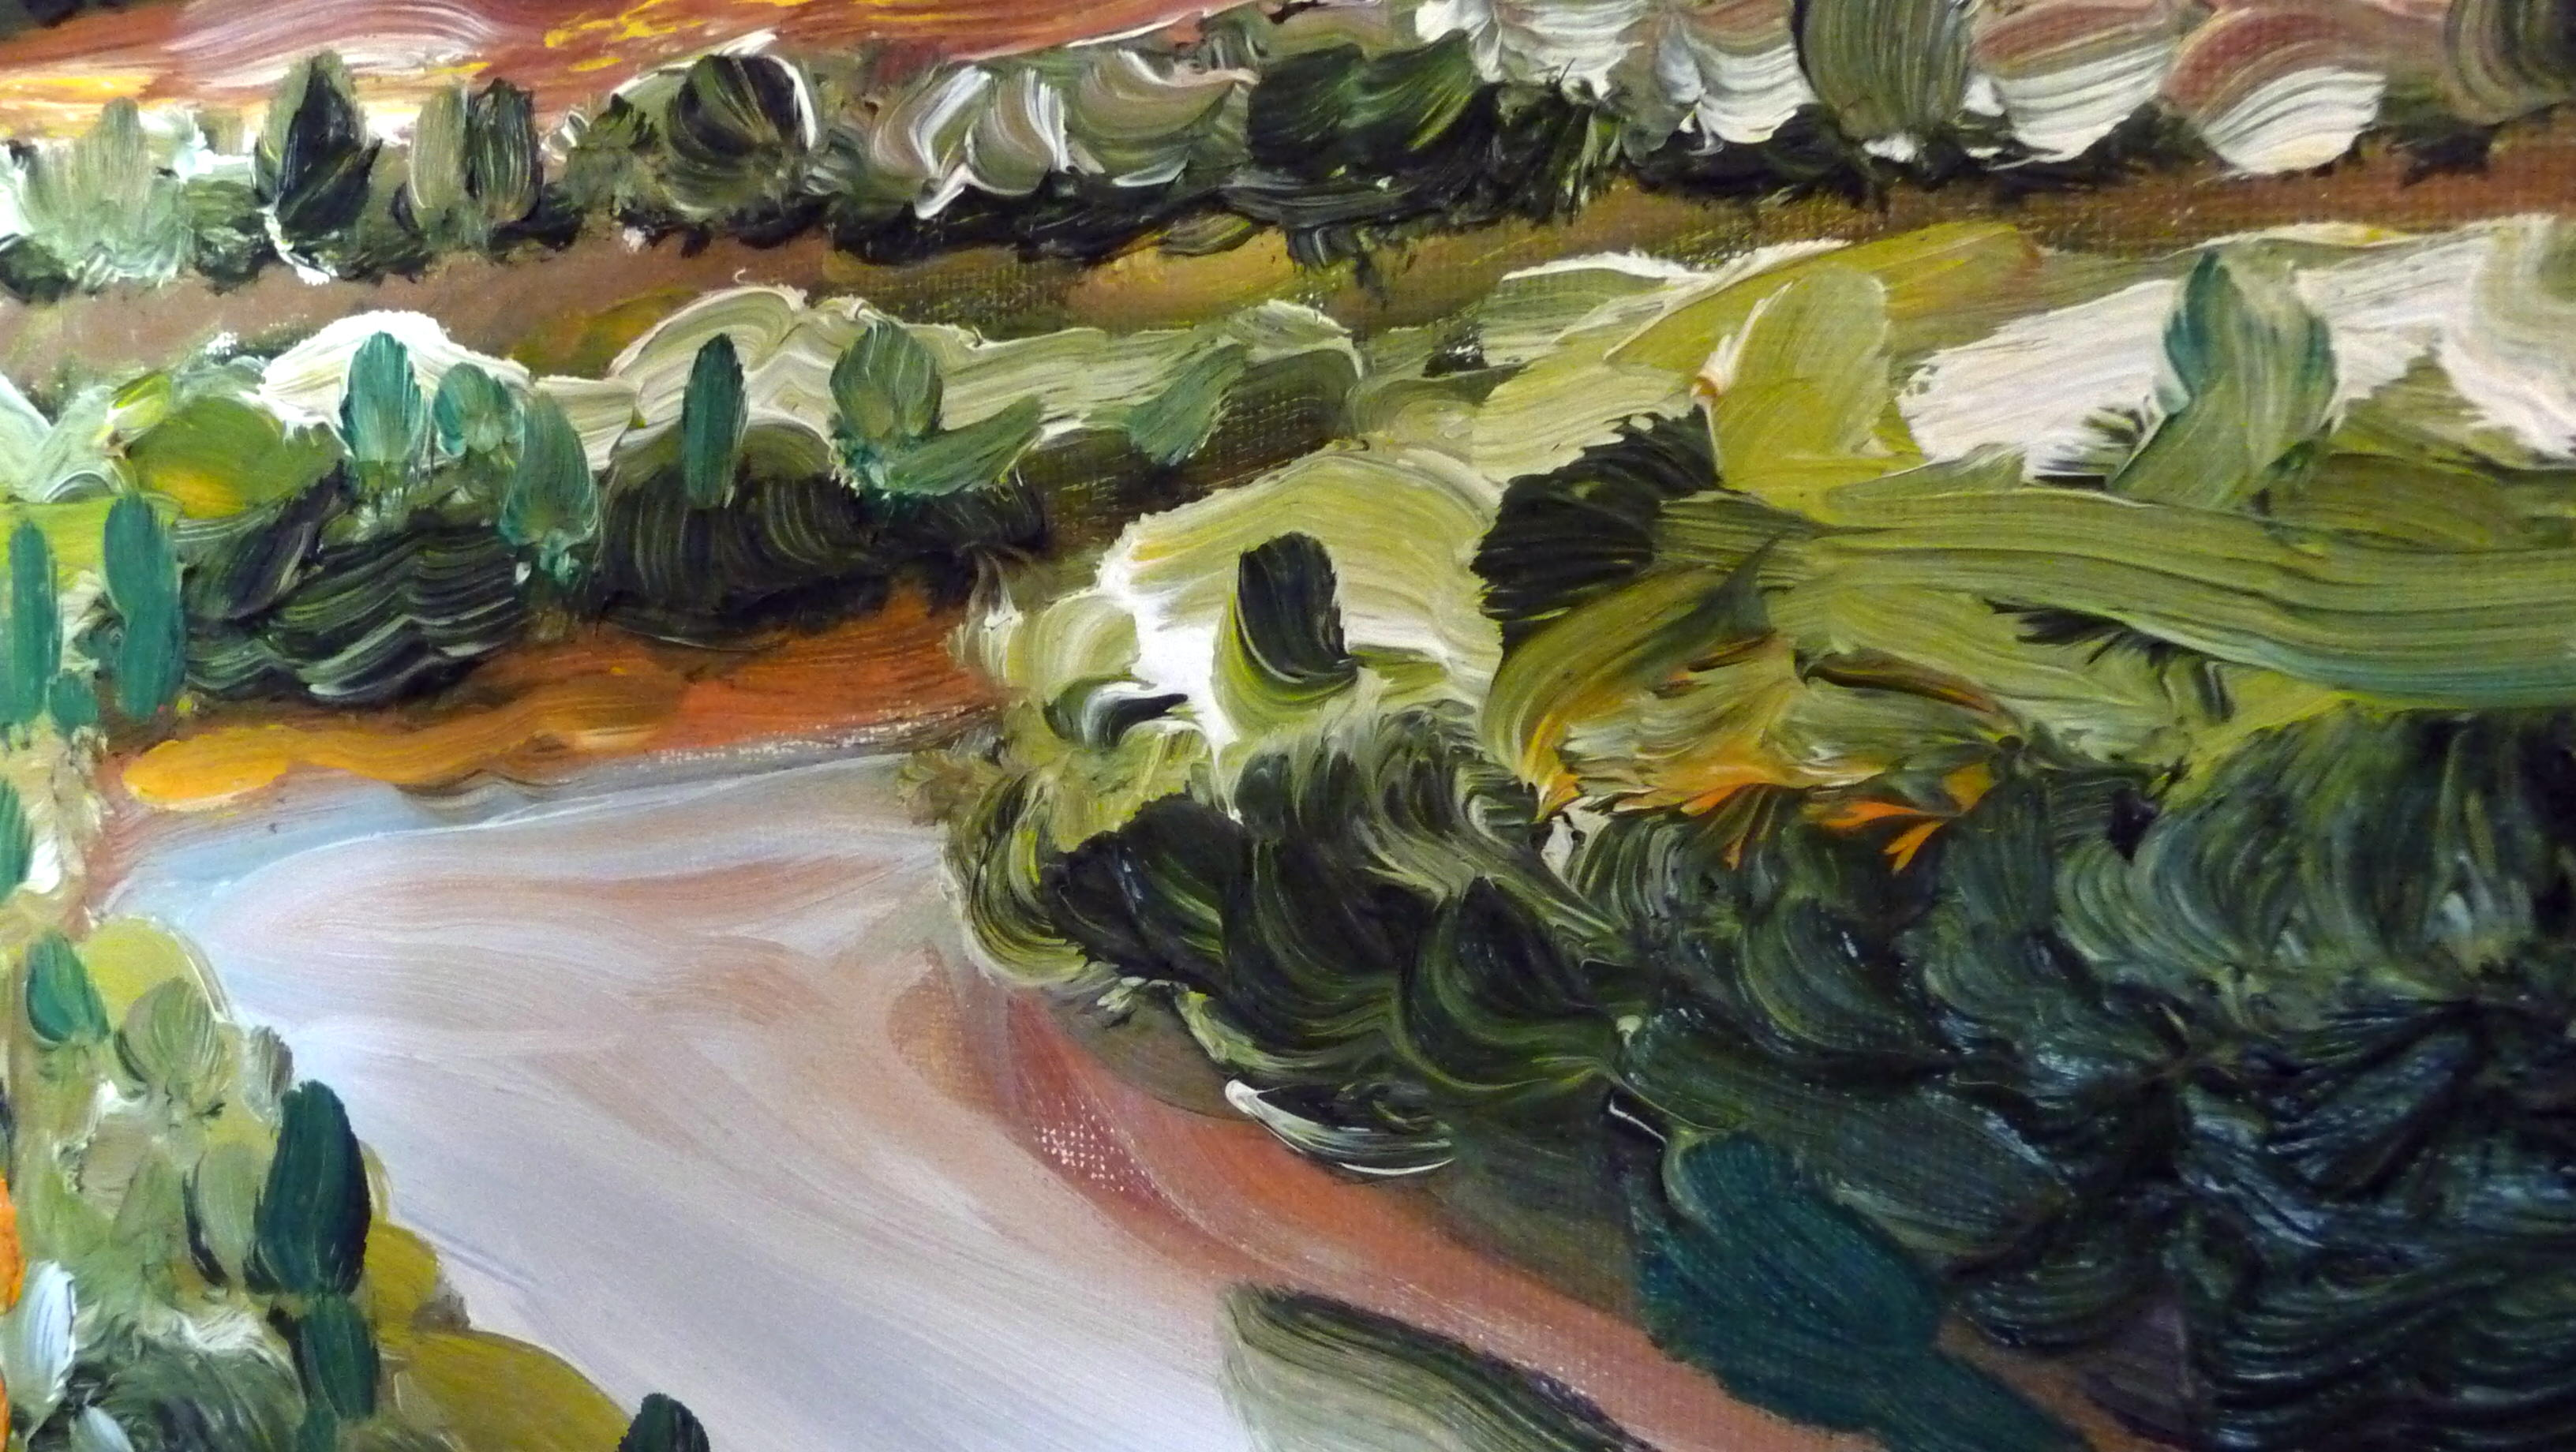 'RIVERSBEND' (DETAIL) OIL PAINTING